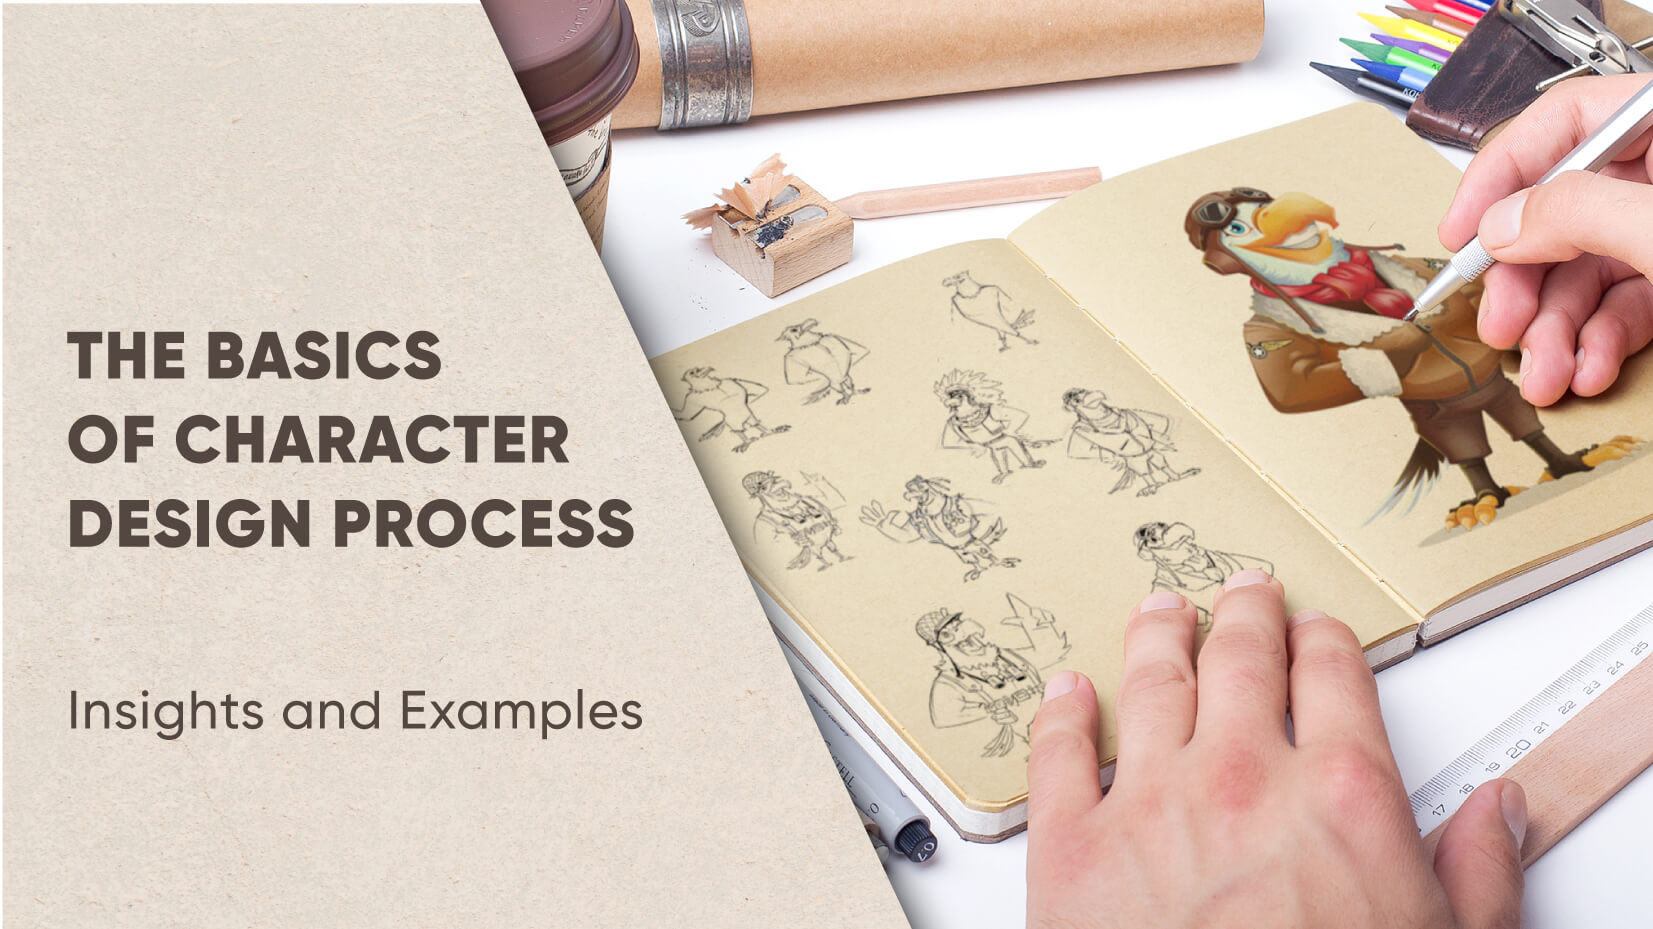 The Basics of Character Design Process: Insights and Examples